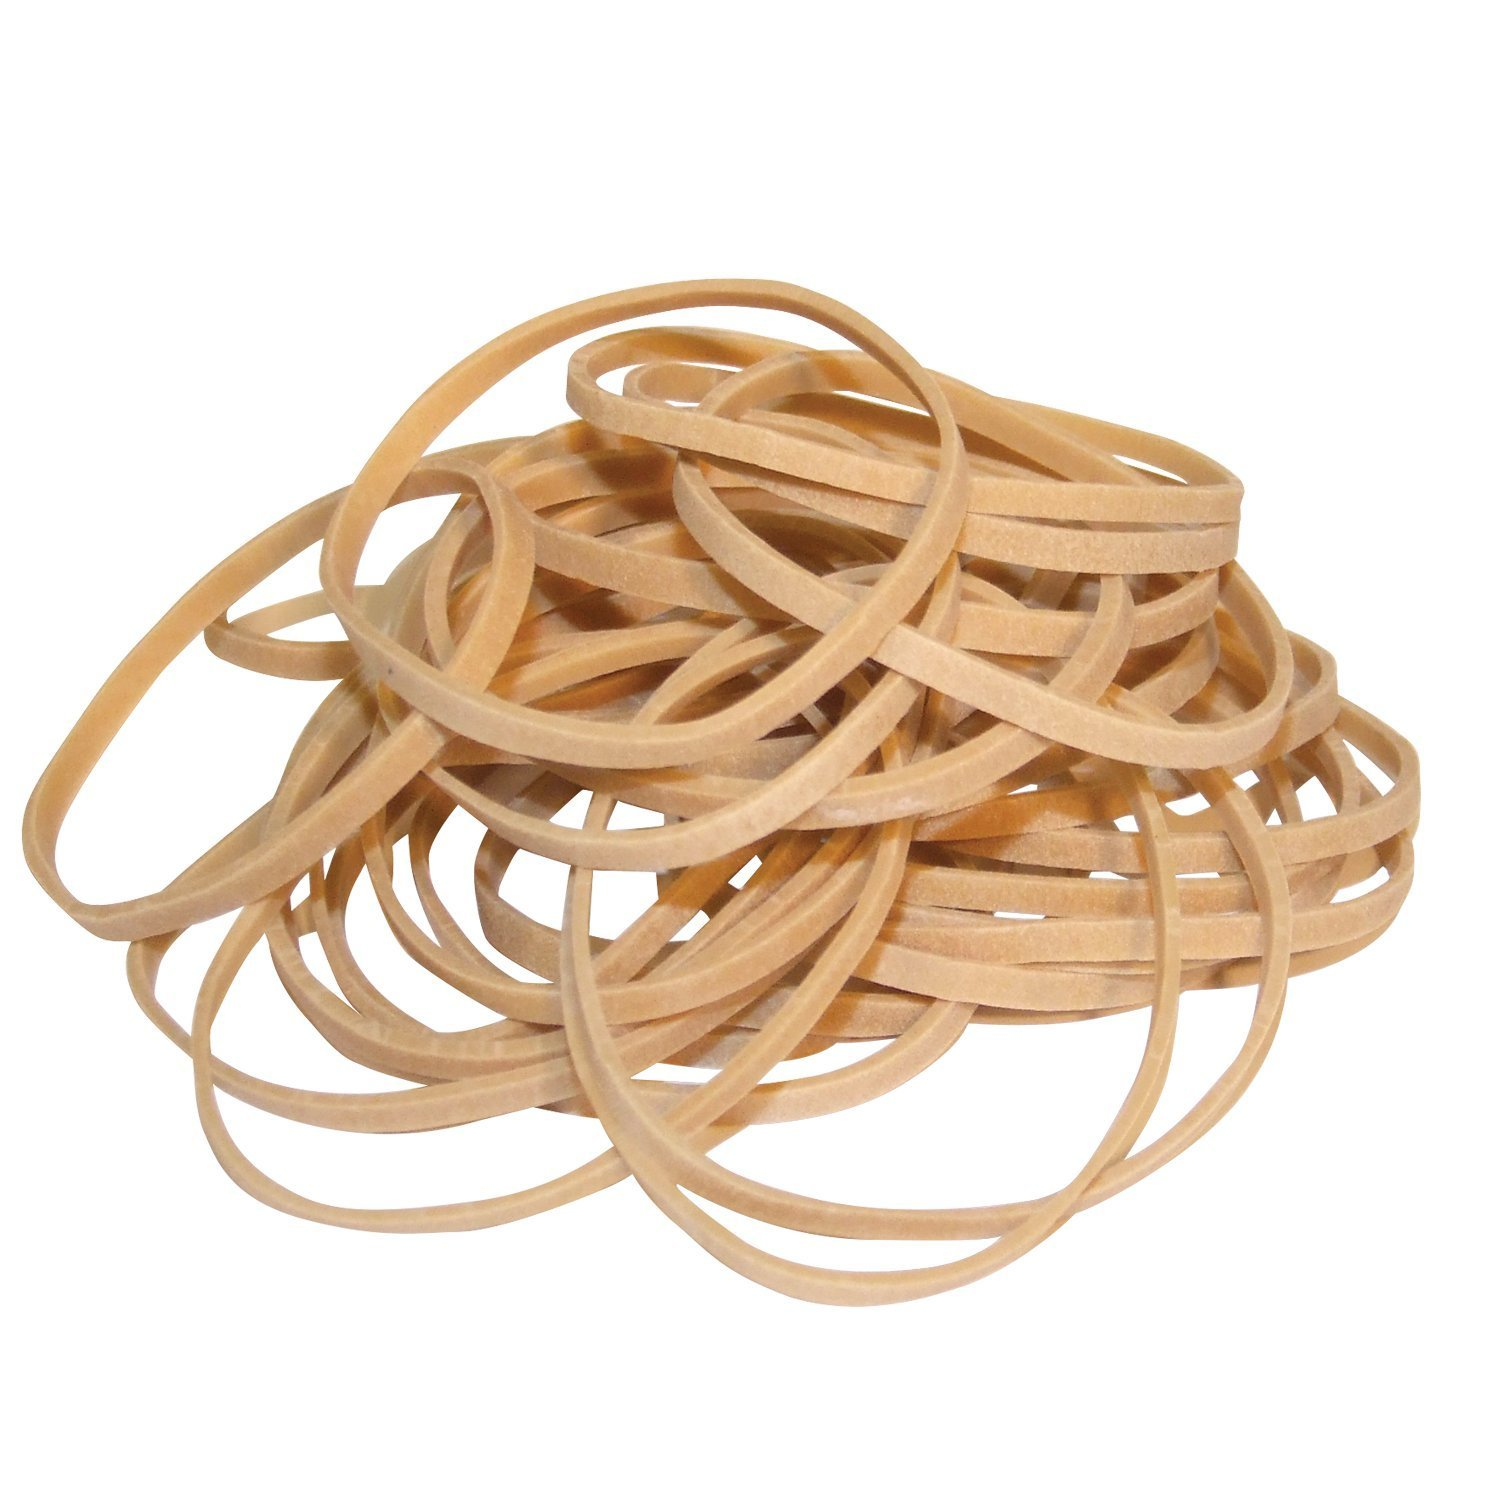 Rubber Bands ValueX Rubber Bands (No 63) 6x76mm 454g